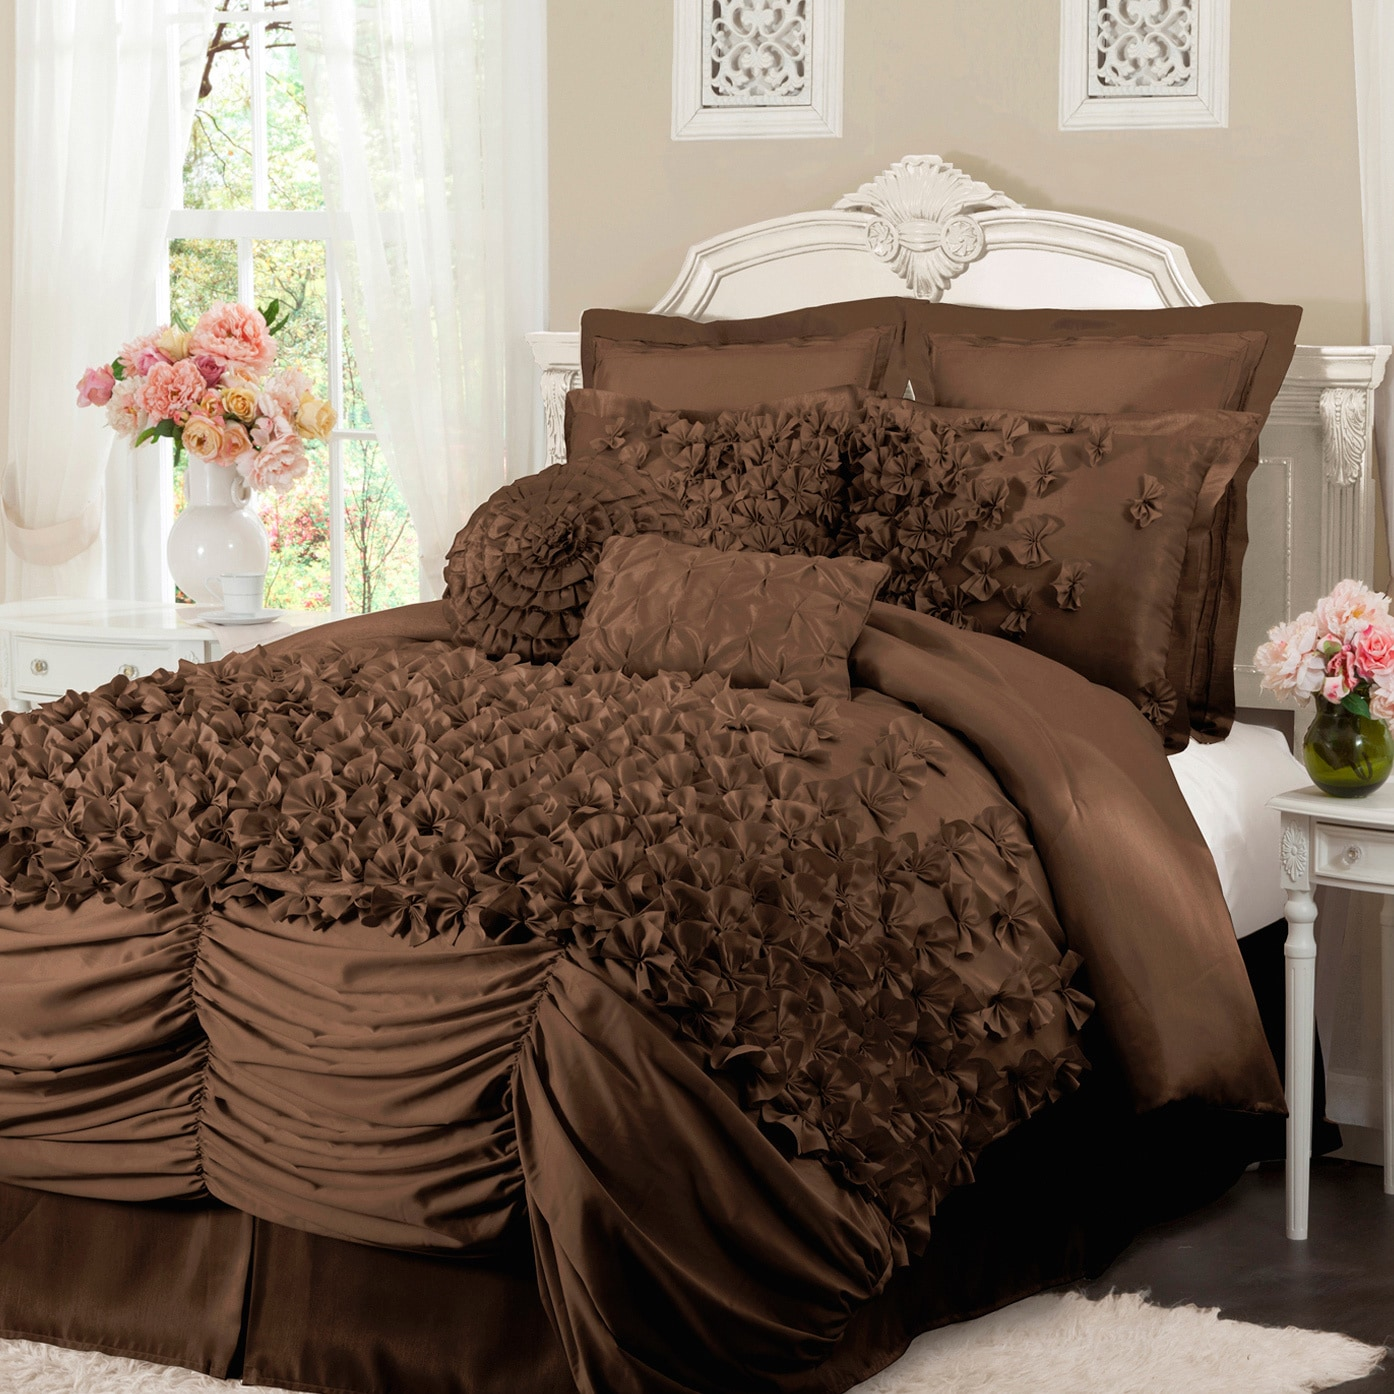 set quilt shipping overstock bed bath bedding avondale orders free piece over com product manor palermo on